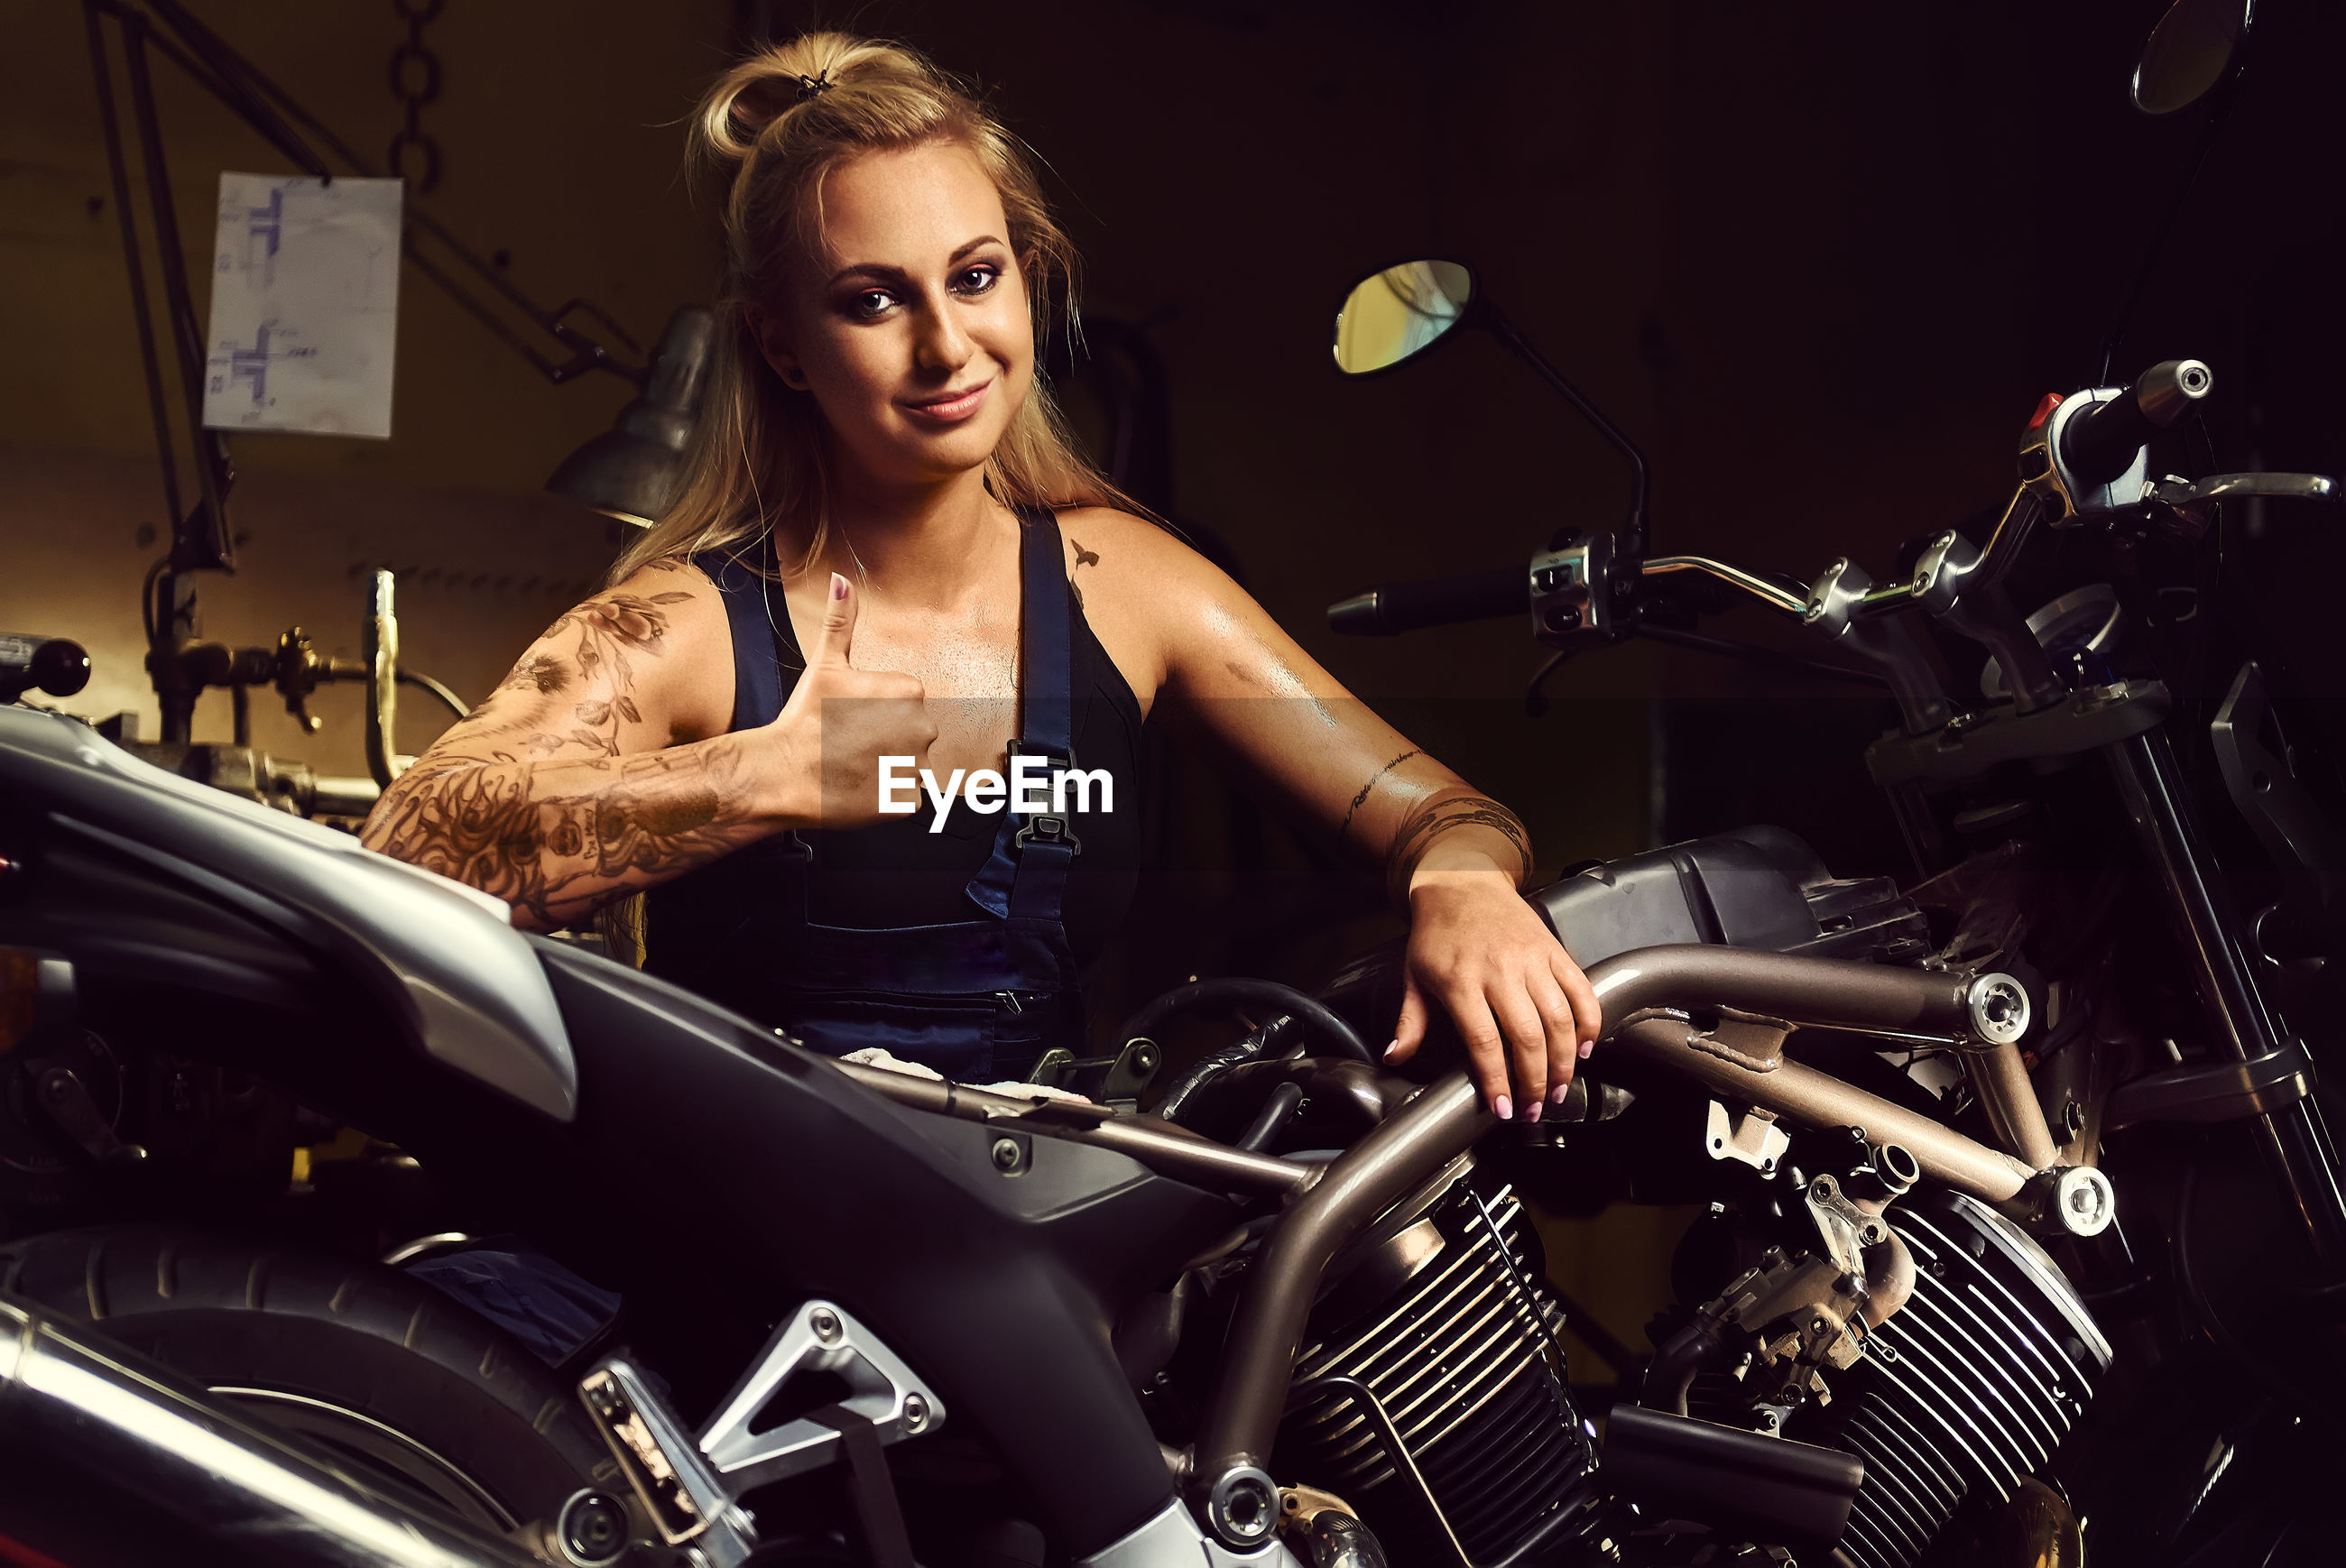 Portrait of female mechanic showing thumbs up in motorcycle workshop